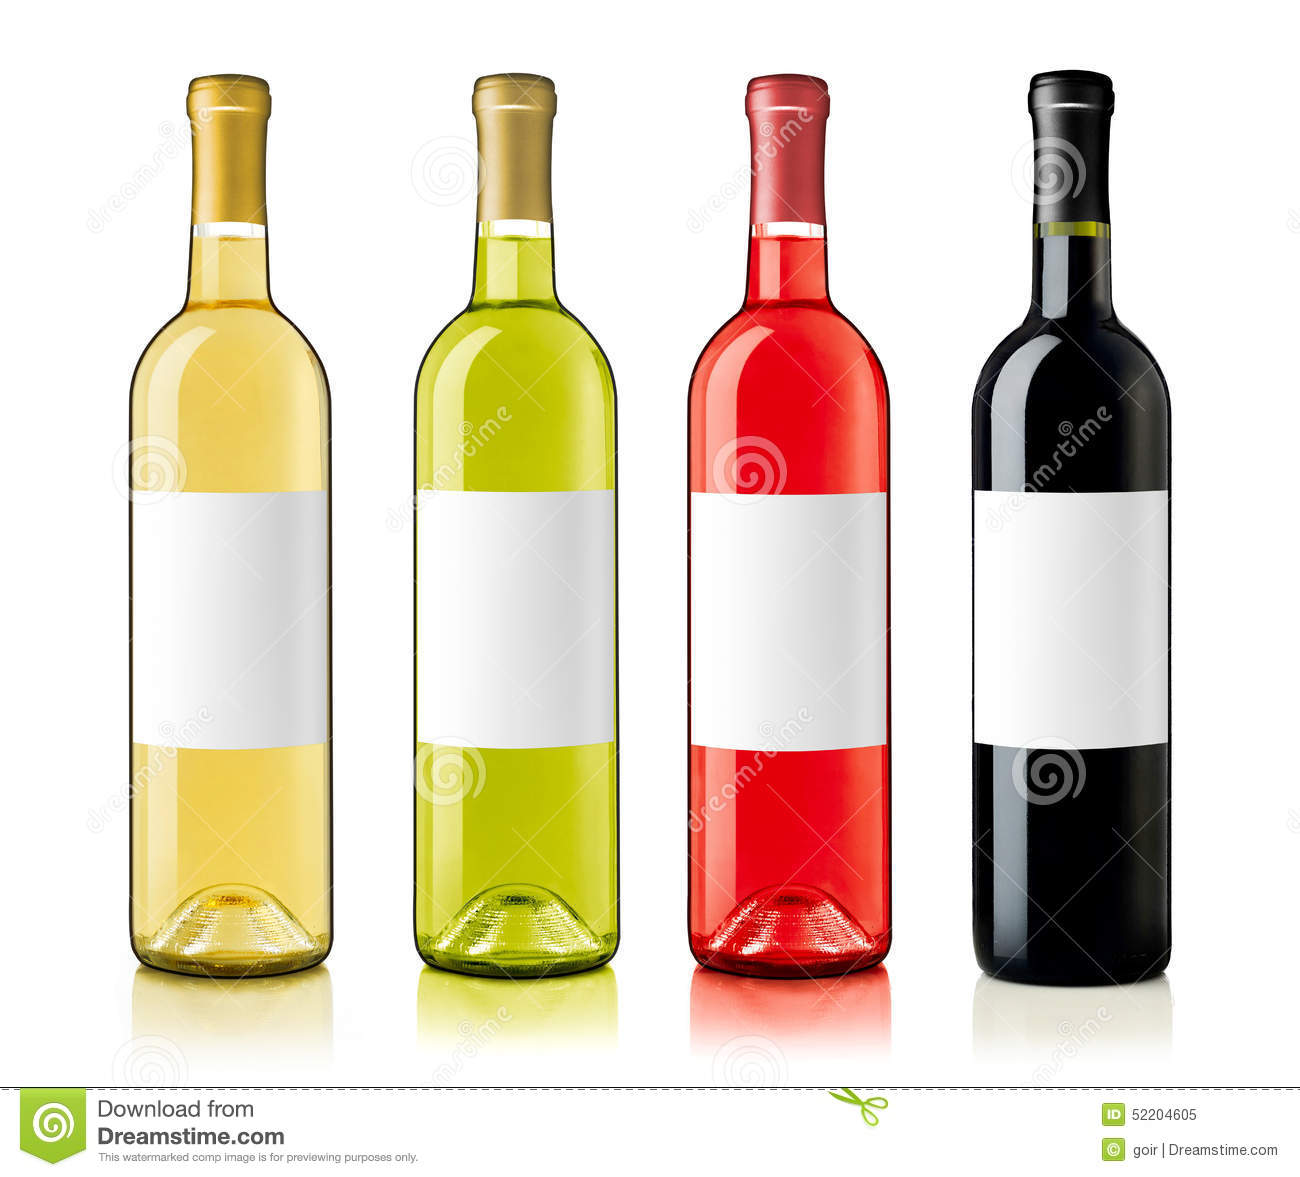 Wine Bottles With Labels Stock Photo - Image: 52204605